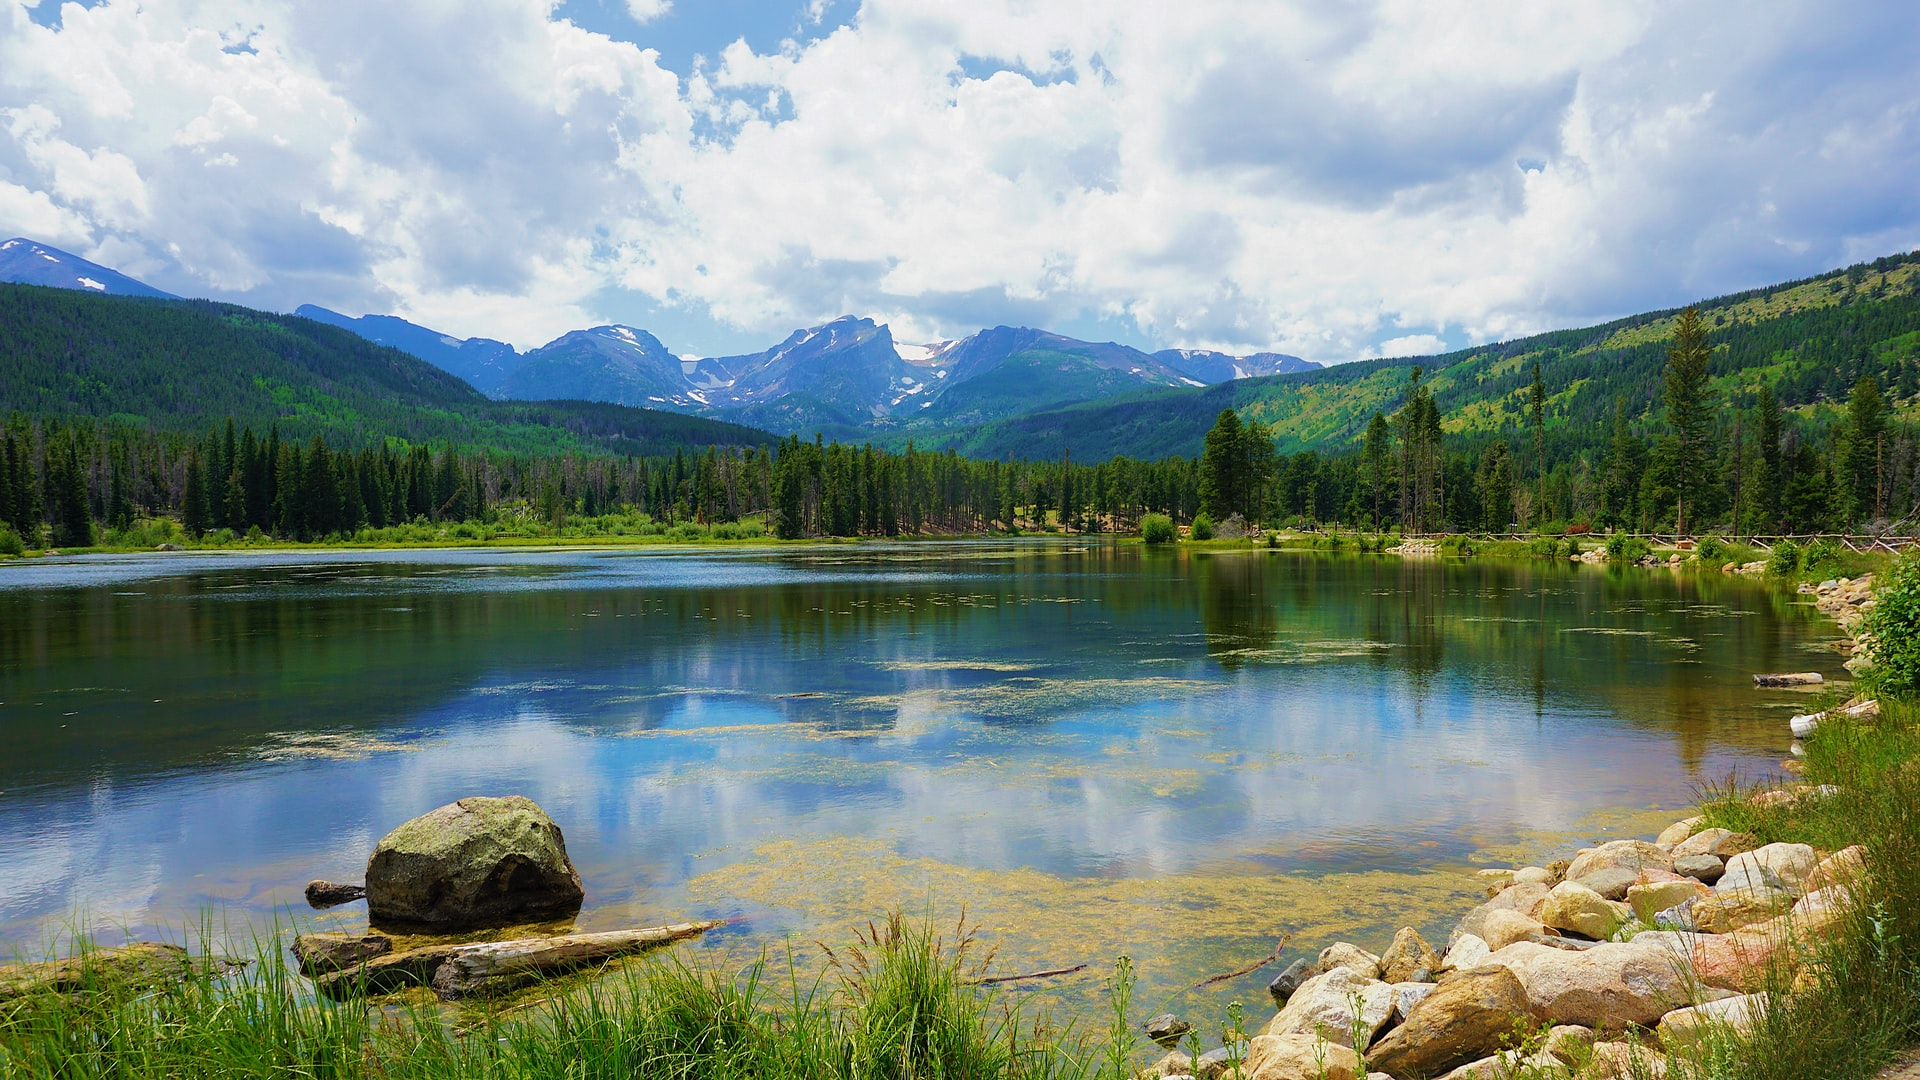 6 Places to Visit While in Colorado